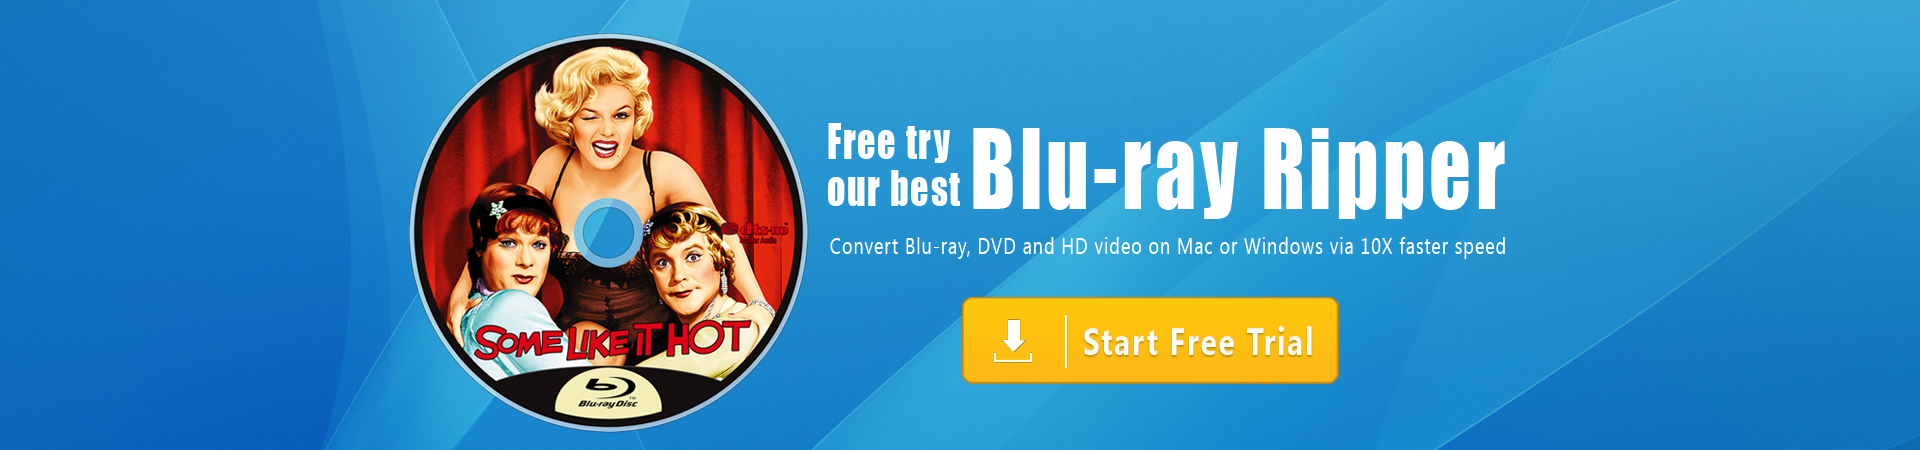 Blu-ray Ripper | Rip Blu-ray on Windows and Mac easily